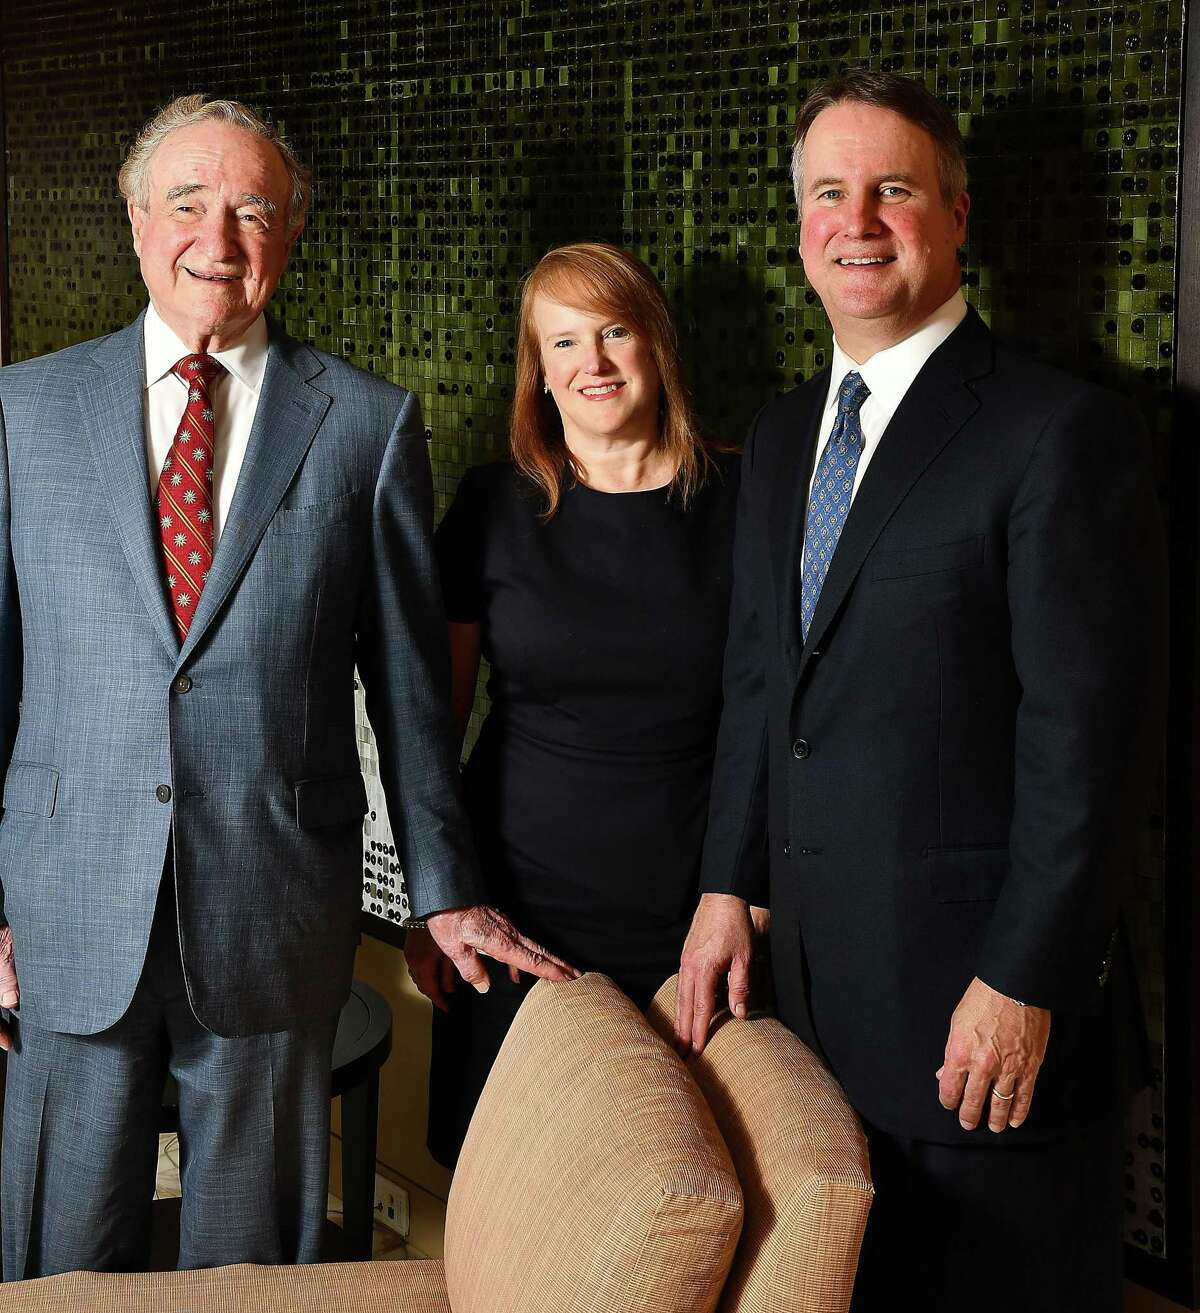 Attorney Harry Reasoner with his son Barrett and daughter Macey at the offices of Vinson & Elkins downtown on Oct. 17, 2019.